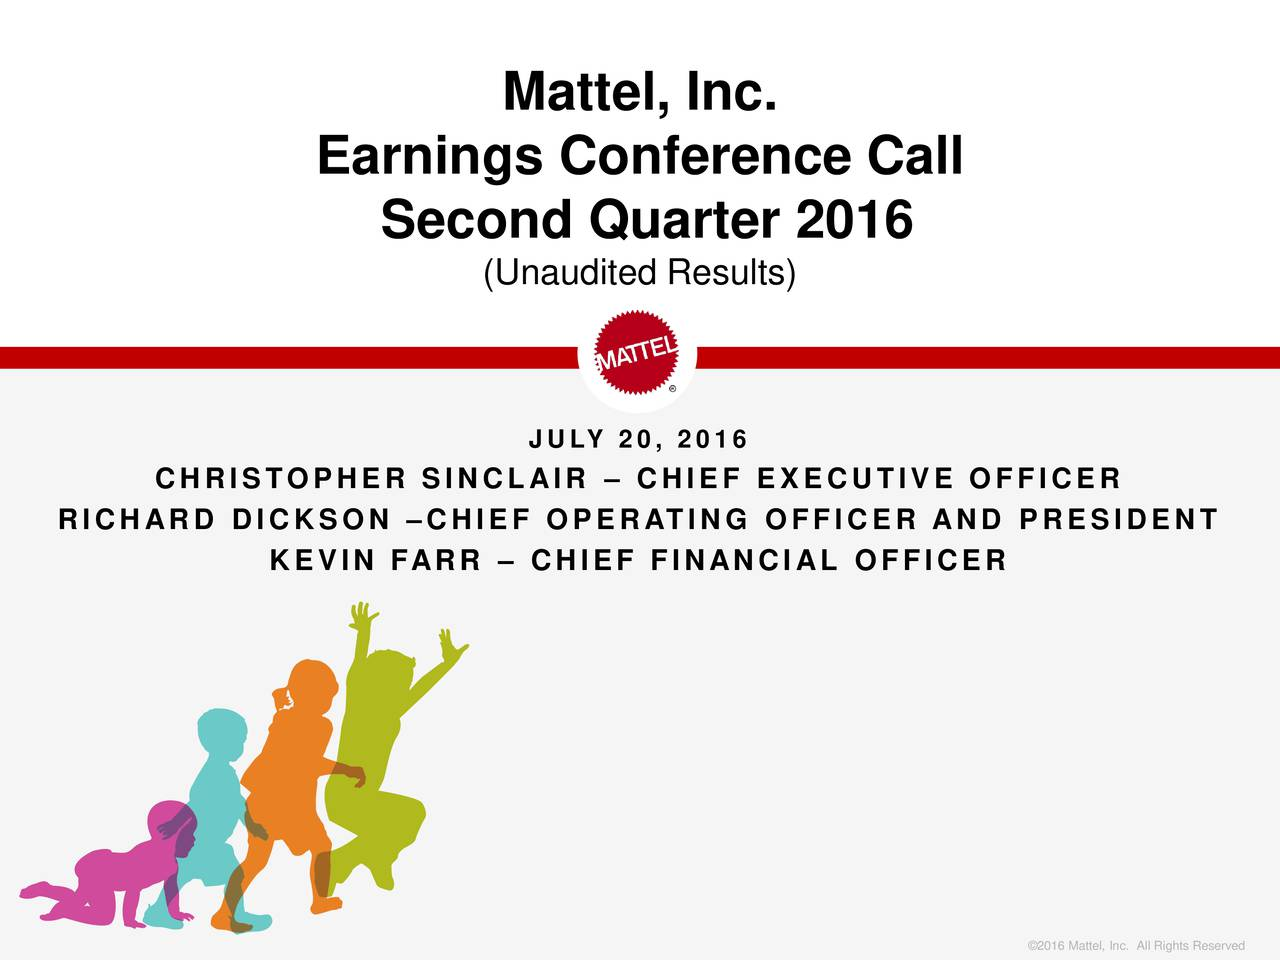 Earnings Conference Call Second Quarter 2016 (Unaudited Results) JULY 20, 2016 CHRISTOPHER SINCLAIR  CHIEF EXECUTIVE OFFICER RICHARD DICKSON CHIEF OPERATING OFFICER AND PRESIDENT KEVIN FARR  CHIEF FINANCIAL OFFICER